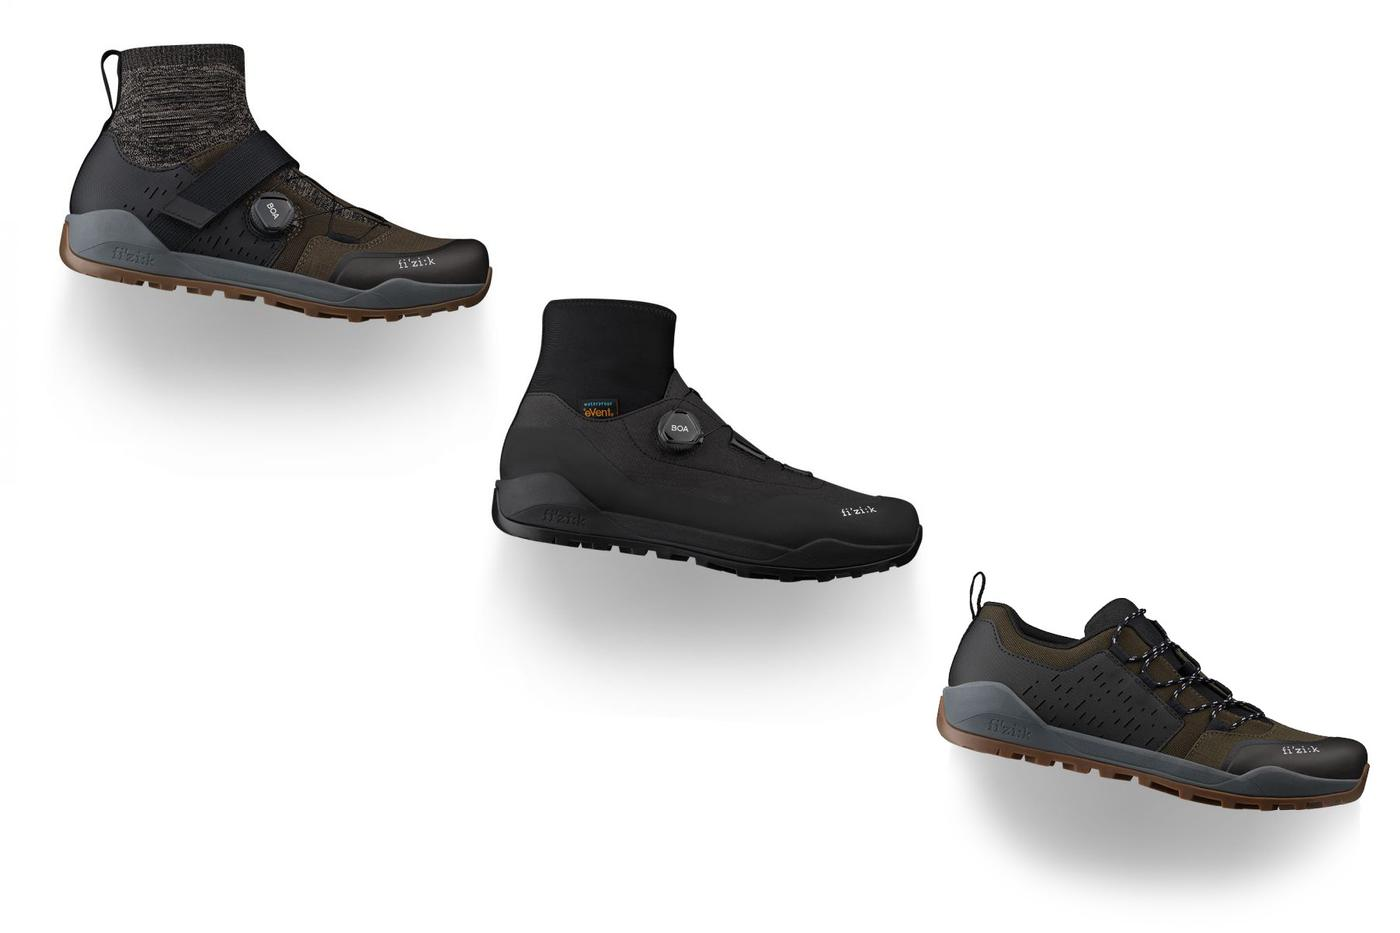 Fizik Enters the Mountain Bike Shoe Market with the X2 Line